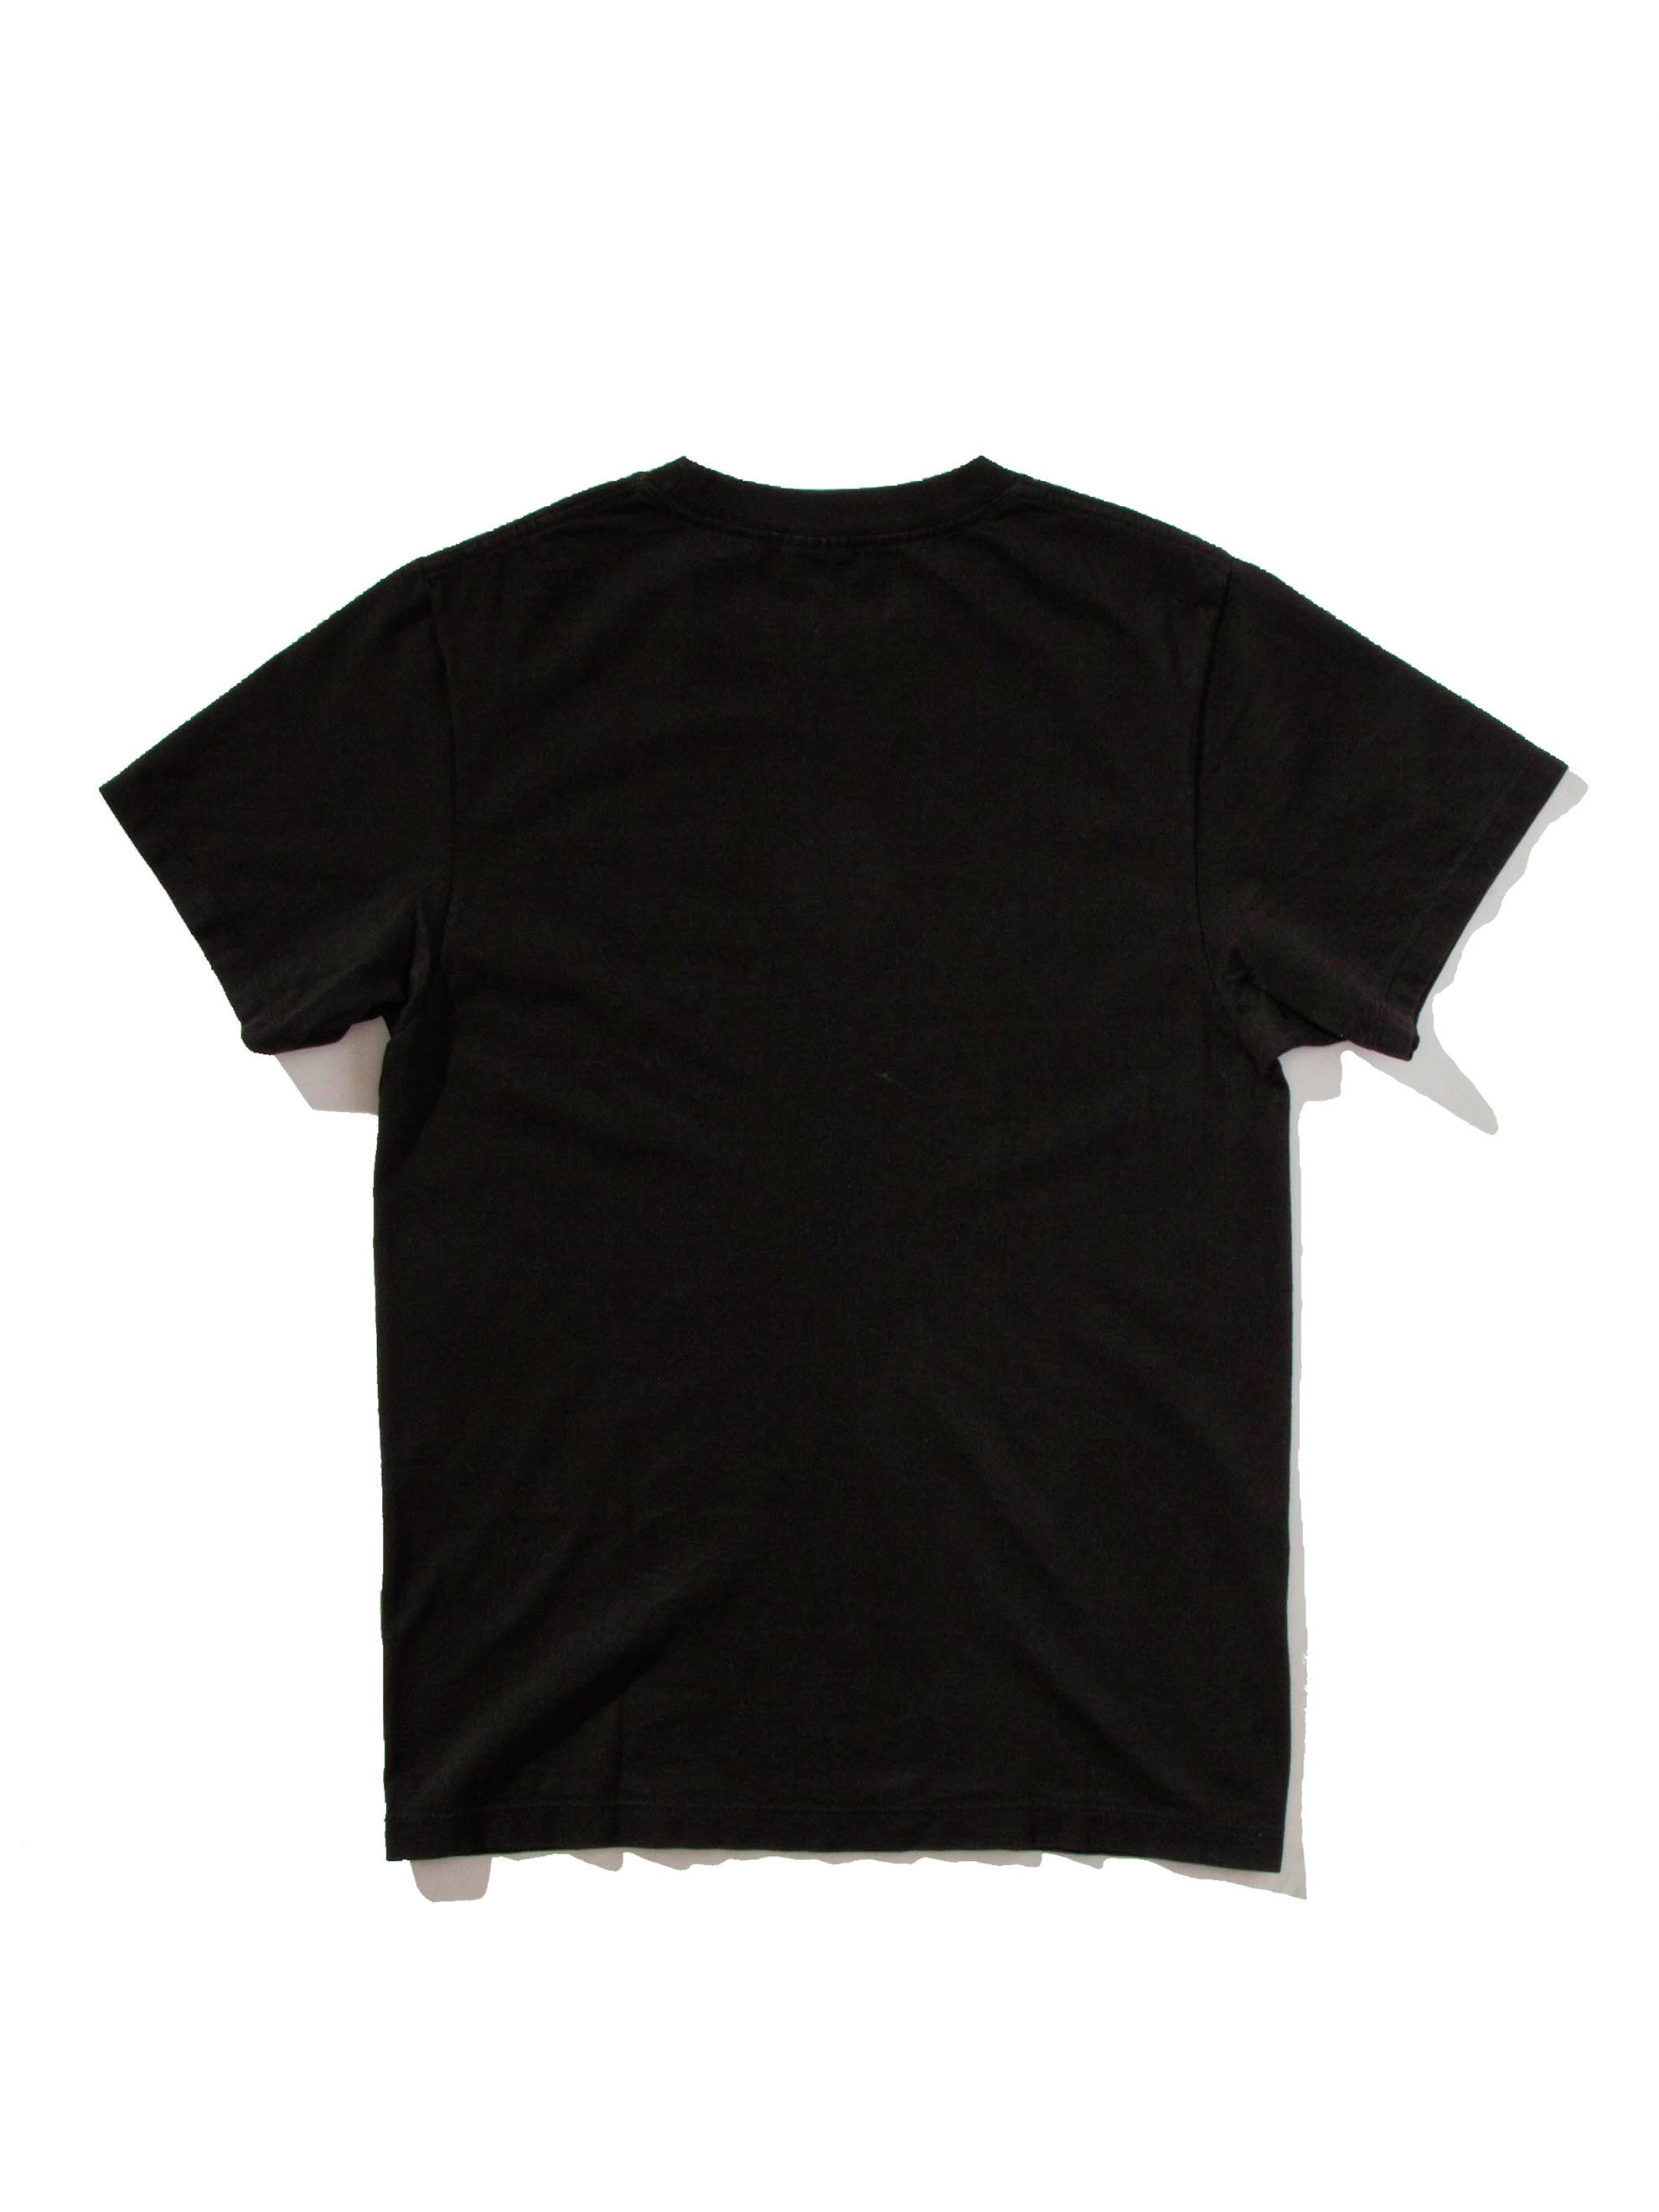 Off-White Old English T-Shirt 5